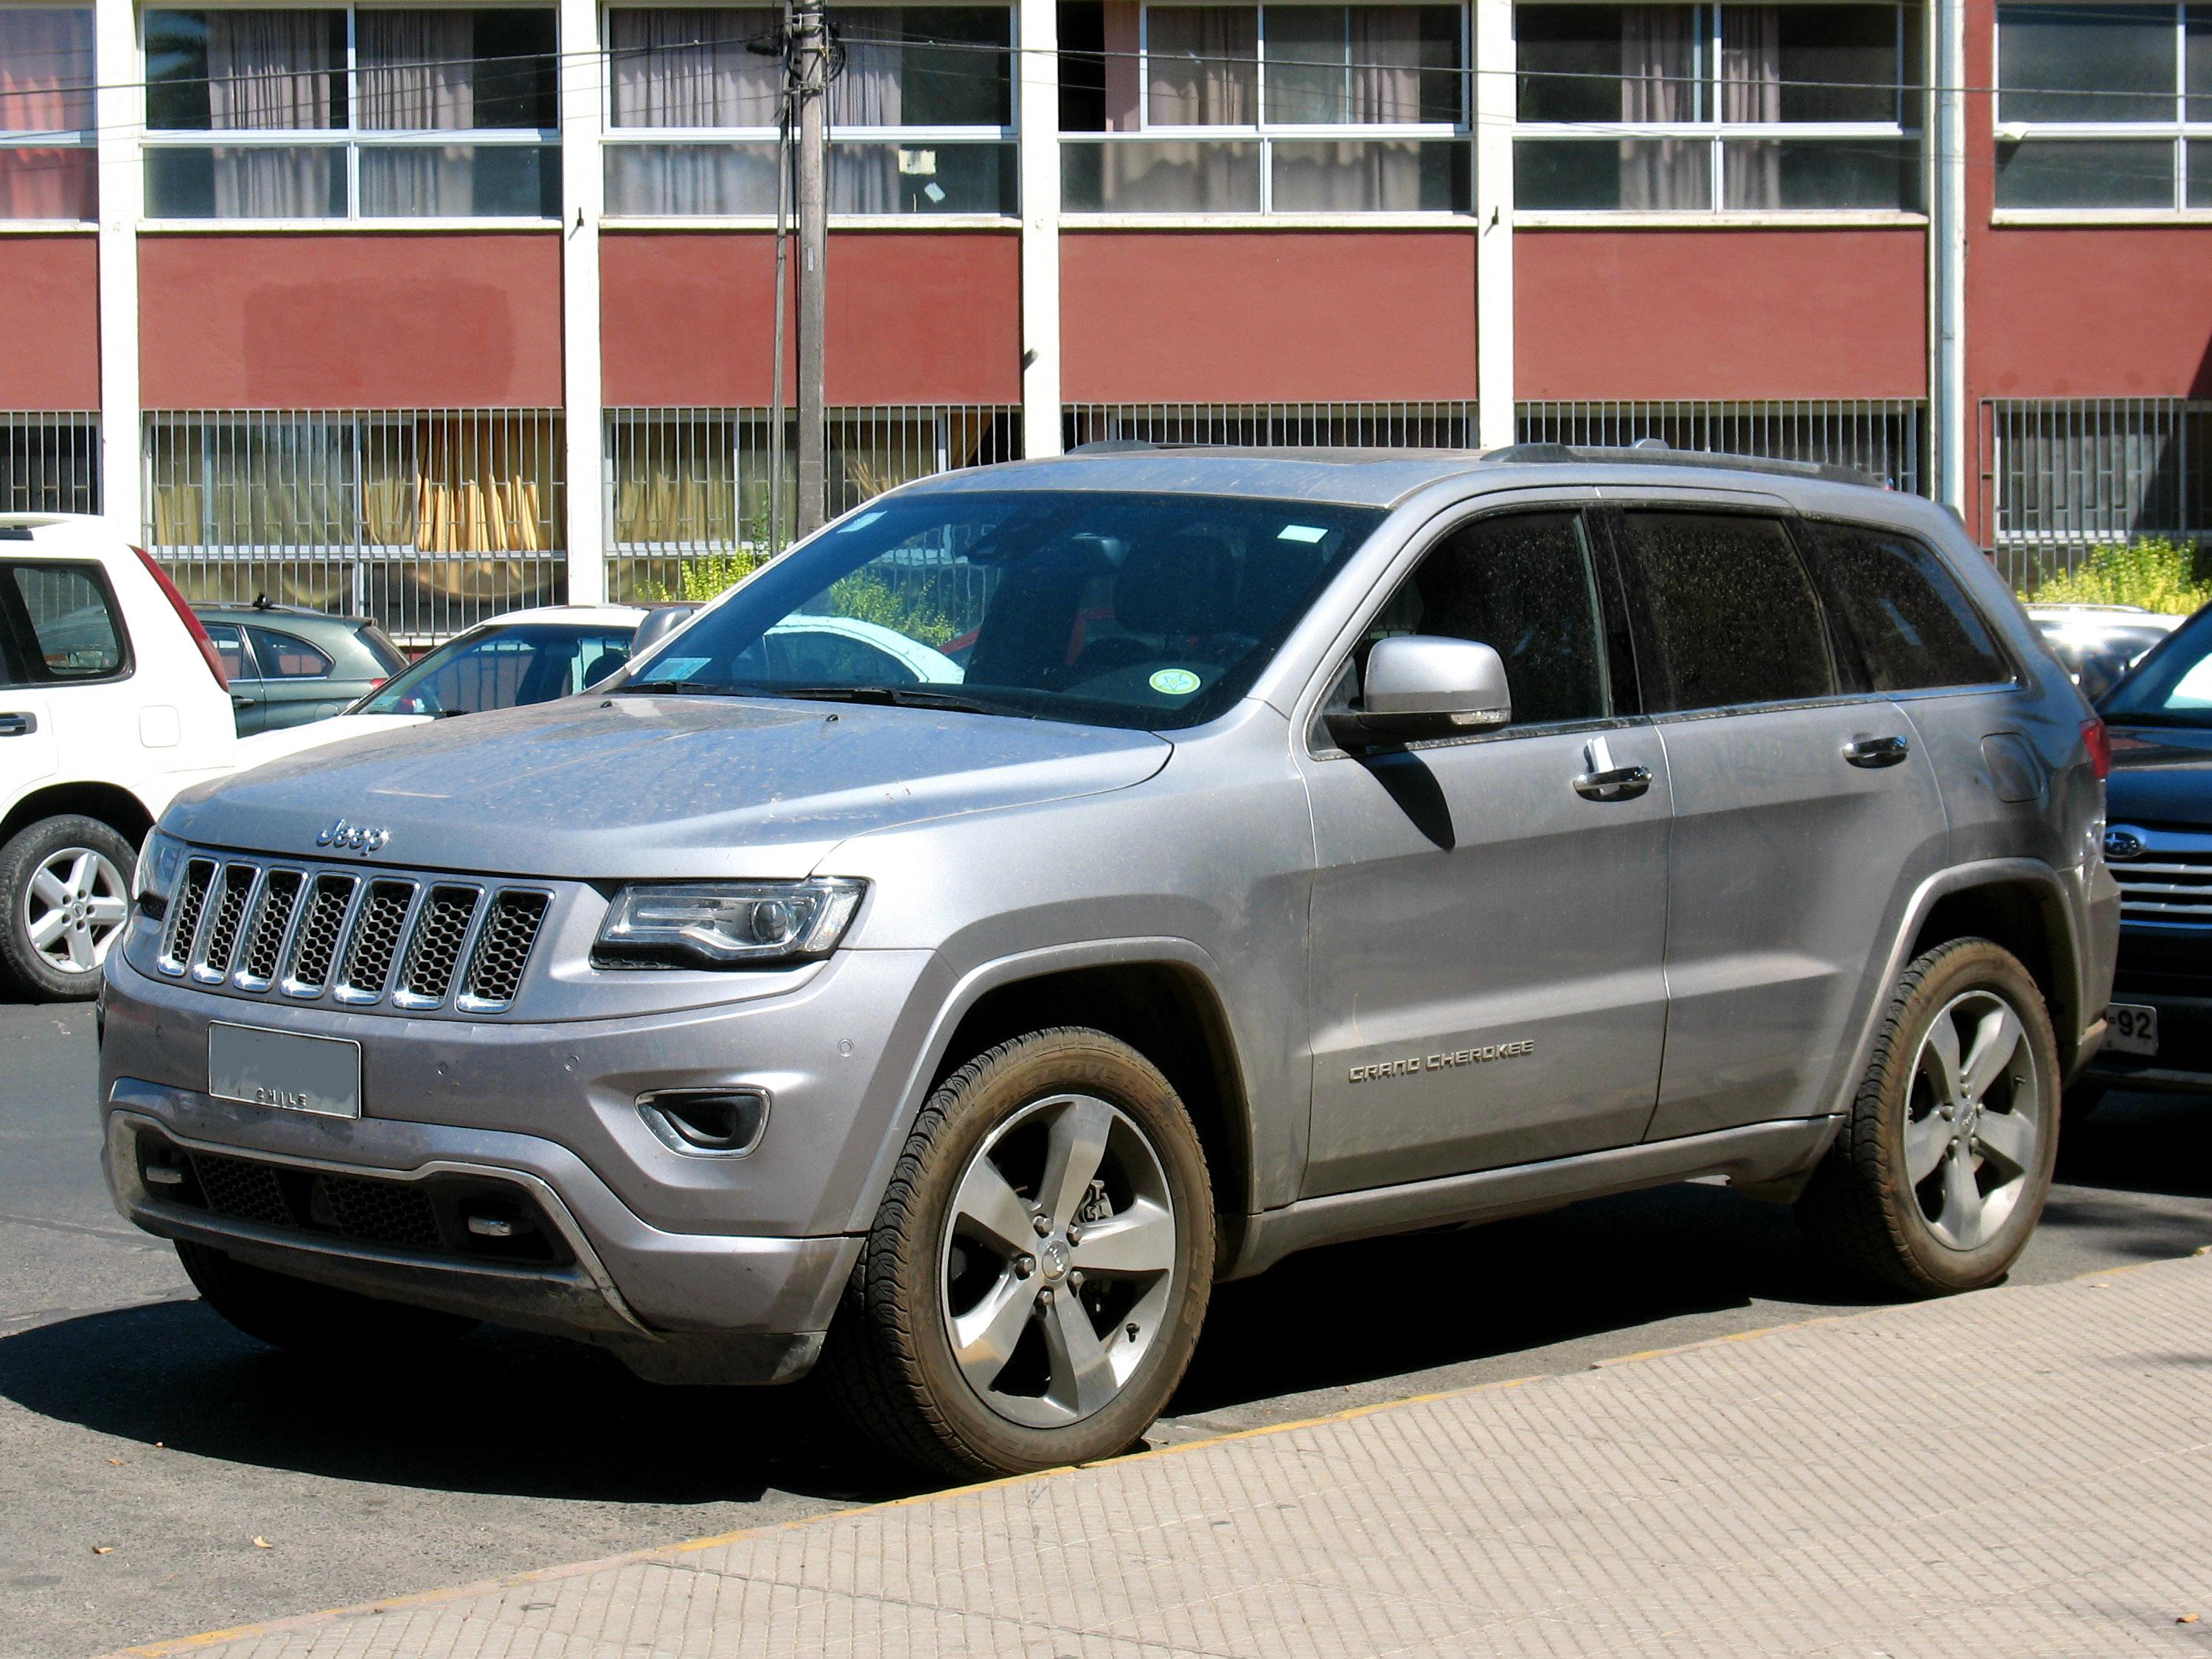 jeep grand wj cherokee of images overland